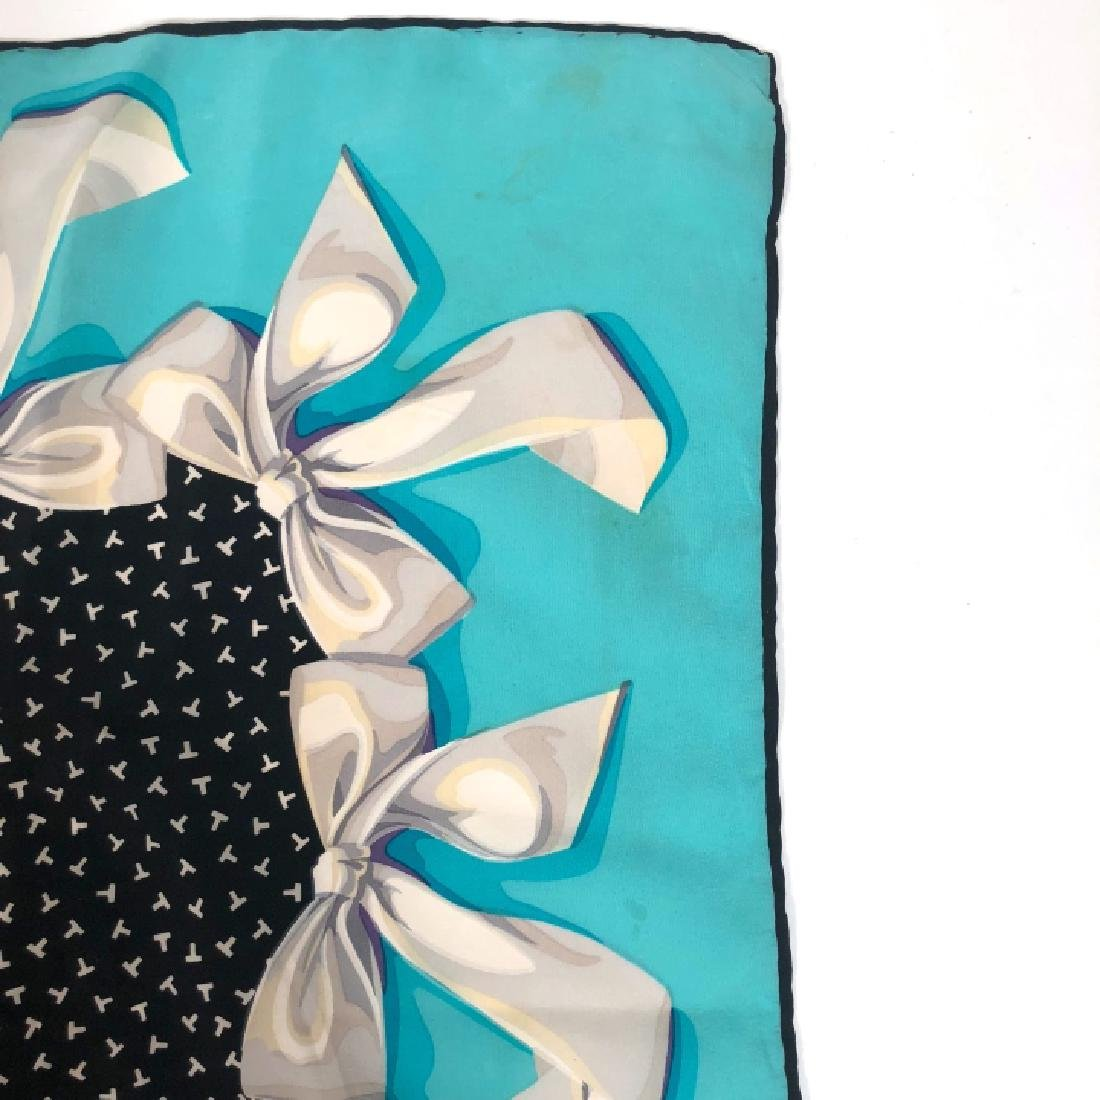 Vintage Tiffany & Co T Design with Bows Silk Scarf - 5